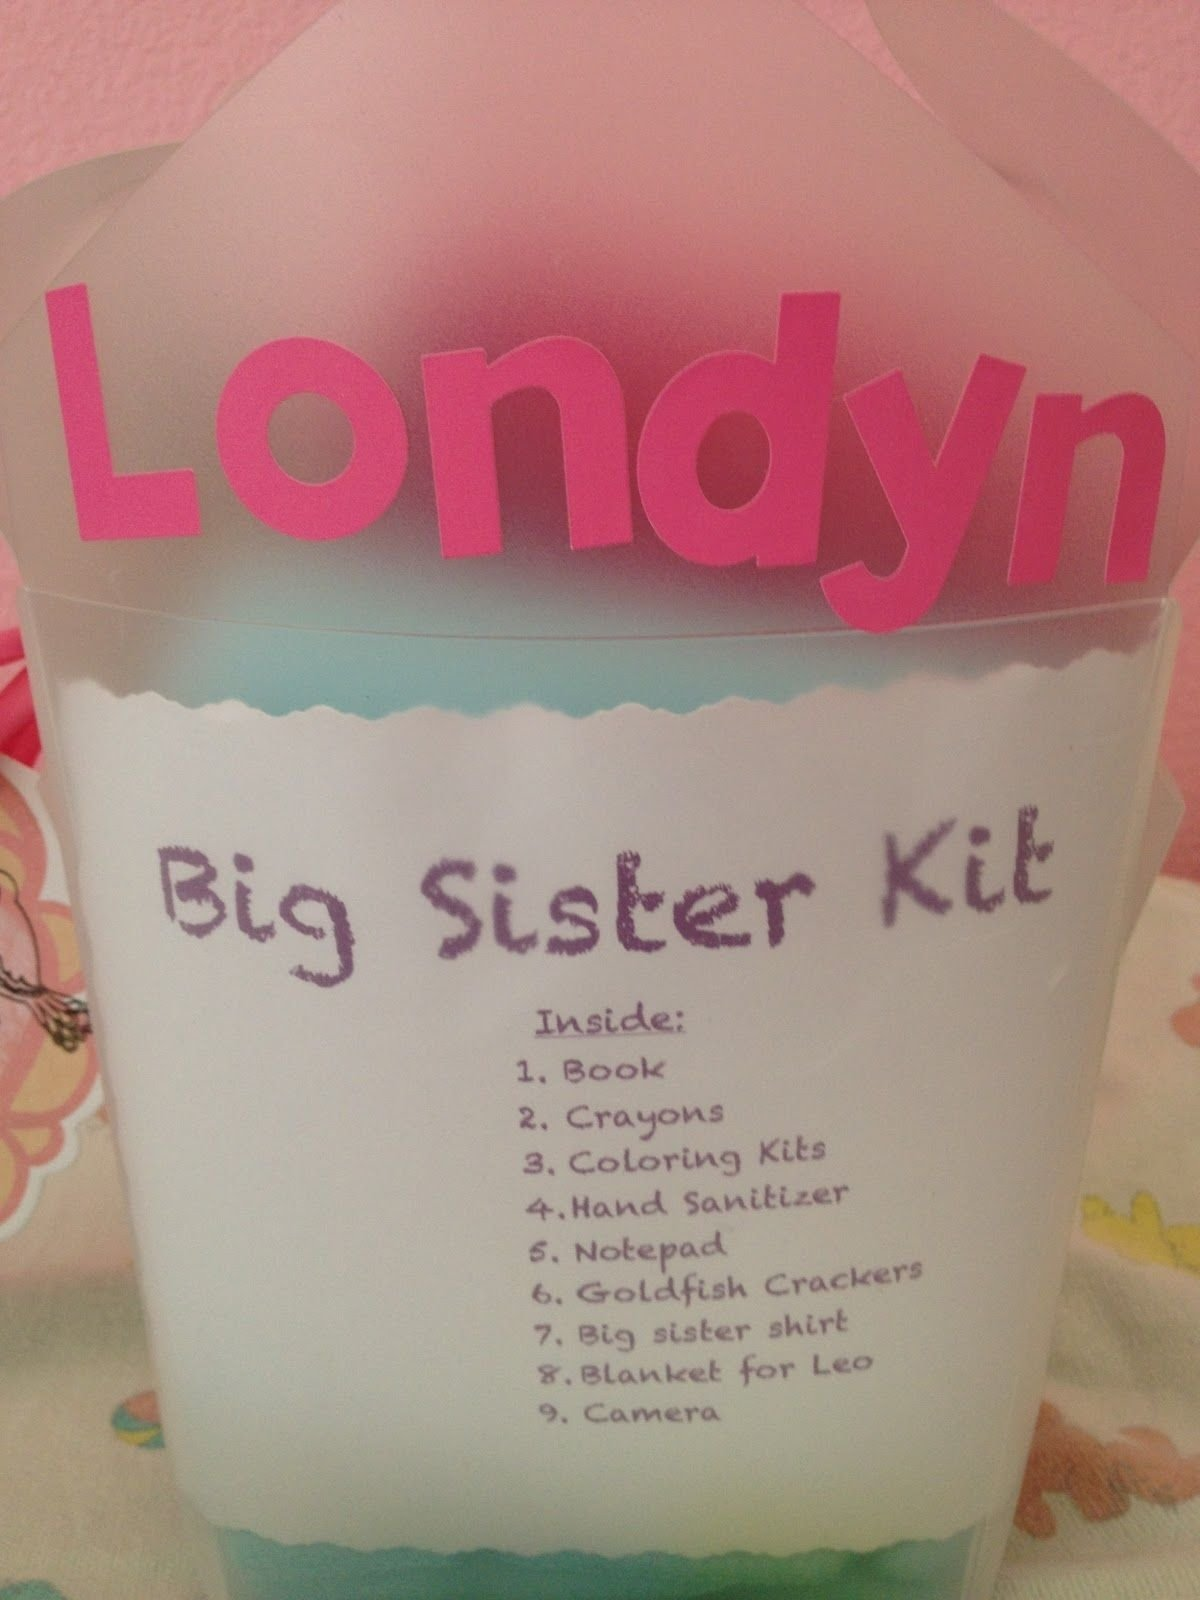 10 Most Popular Gift Ideas For Sister From Brother big sister kit baby shower gift cute idea for the big sister to not 1